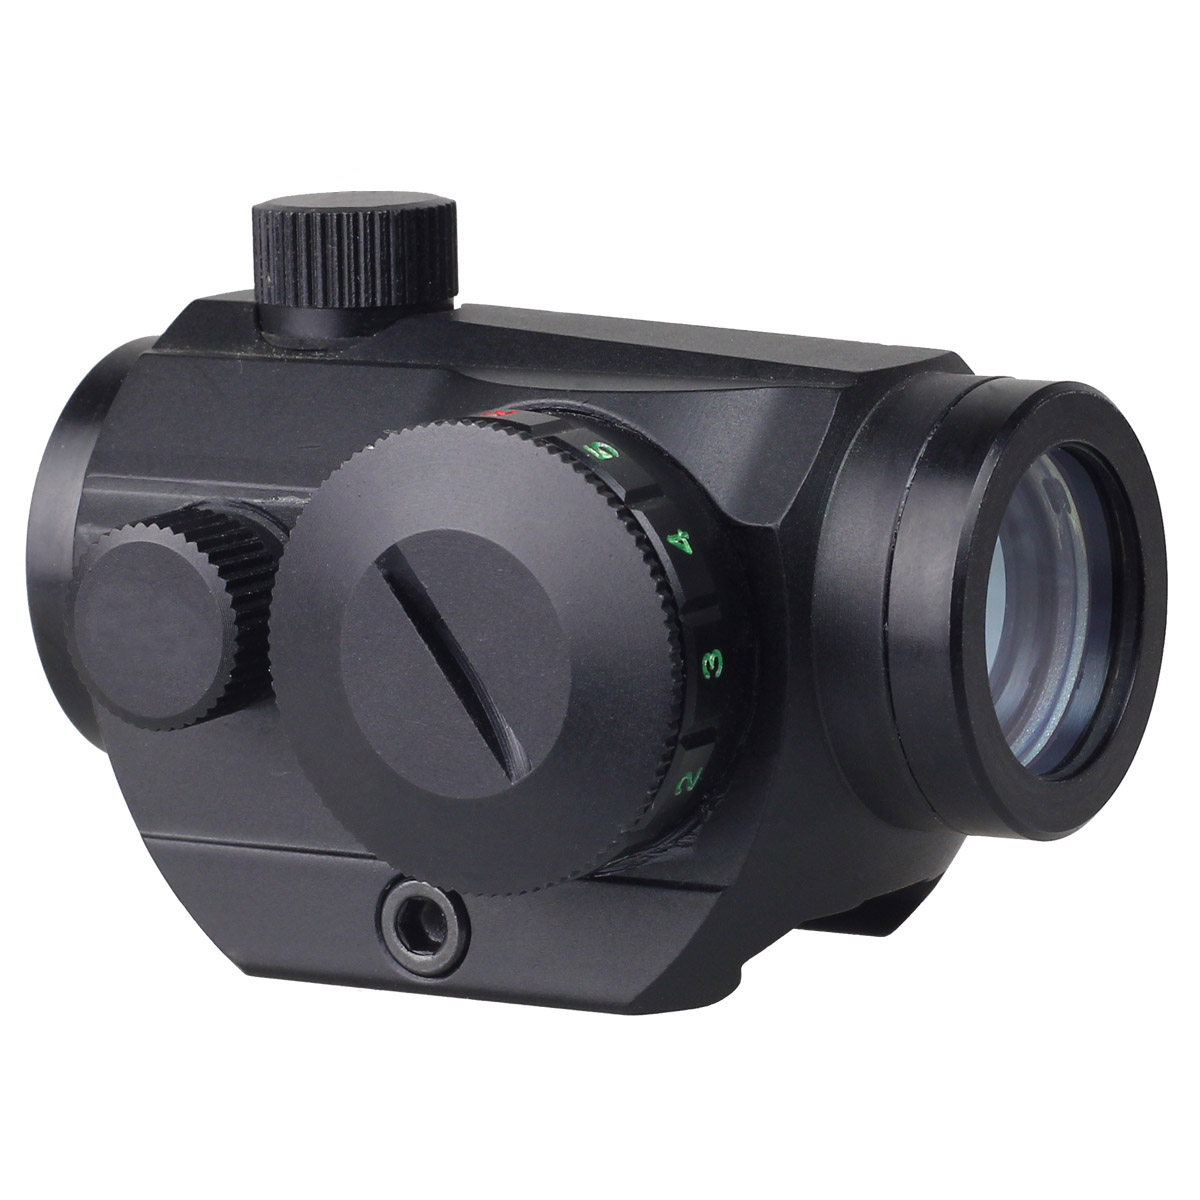 Tactical Red Green Dot Holographic Sight Scope w/ 20mm Weaver Picatinny Rail Mount 20mm for Pistol Gun Hunting Scopes Air Soft